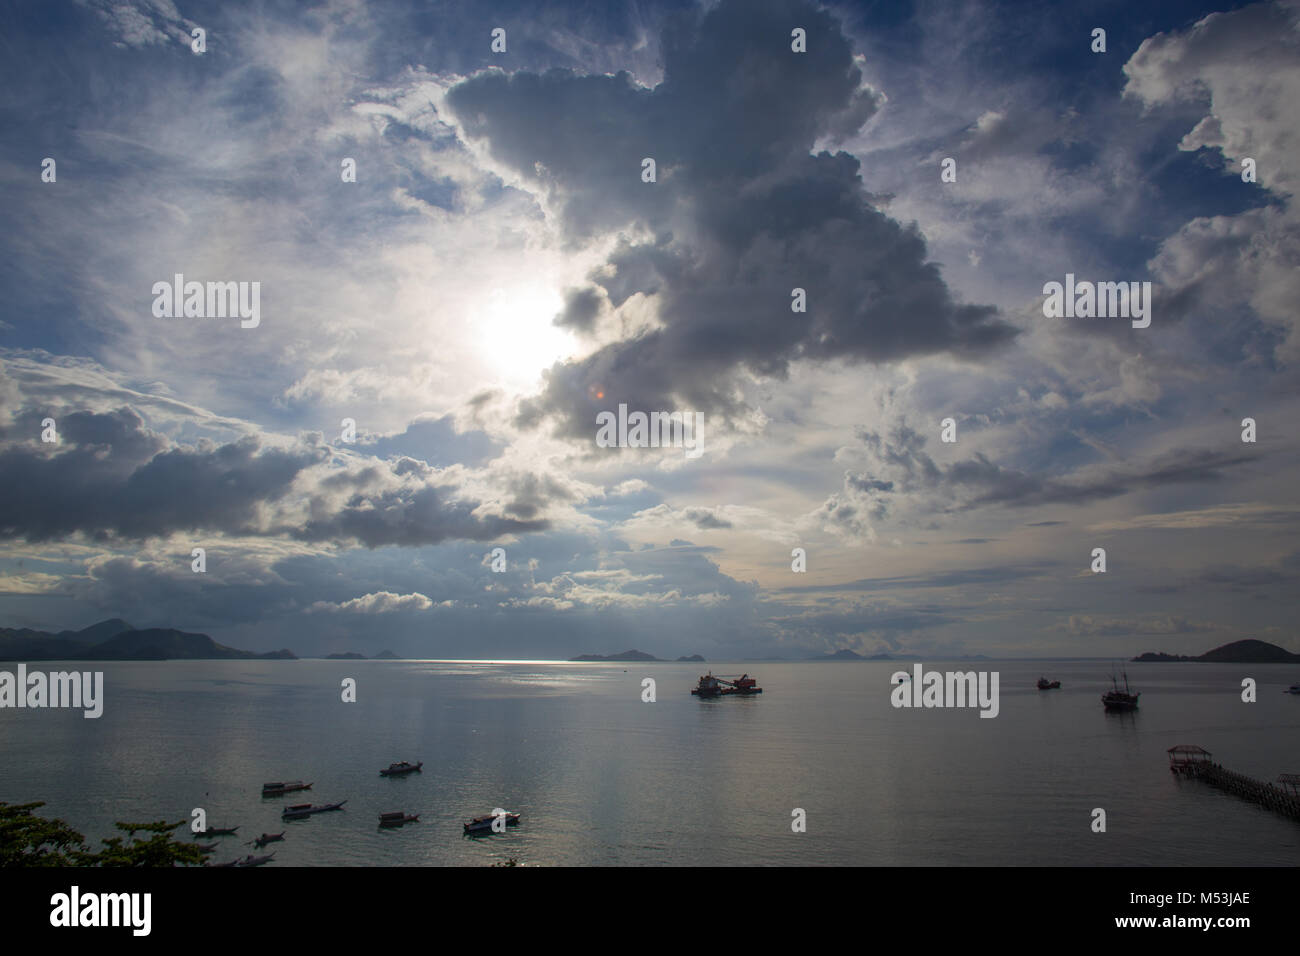 Clouds spectacle turbulent sky and deep rising sun over Flores island sea coastline with anchored boats and ships - Stock Image